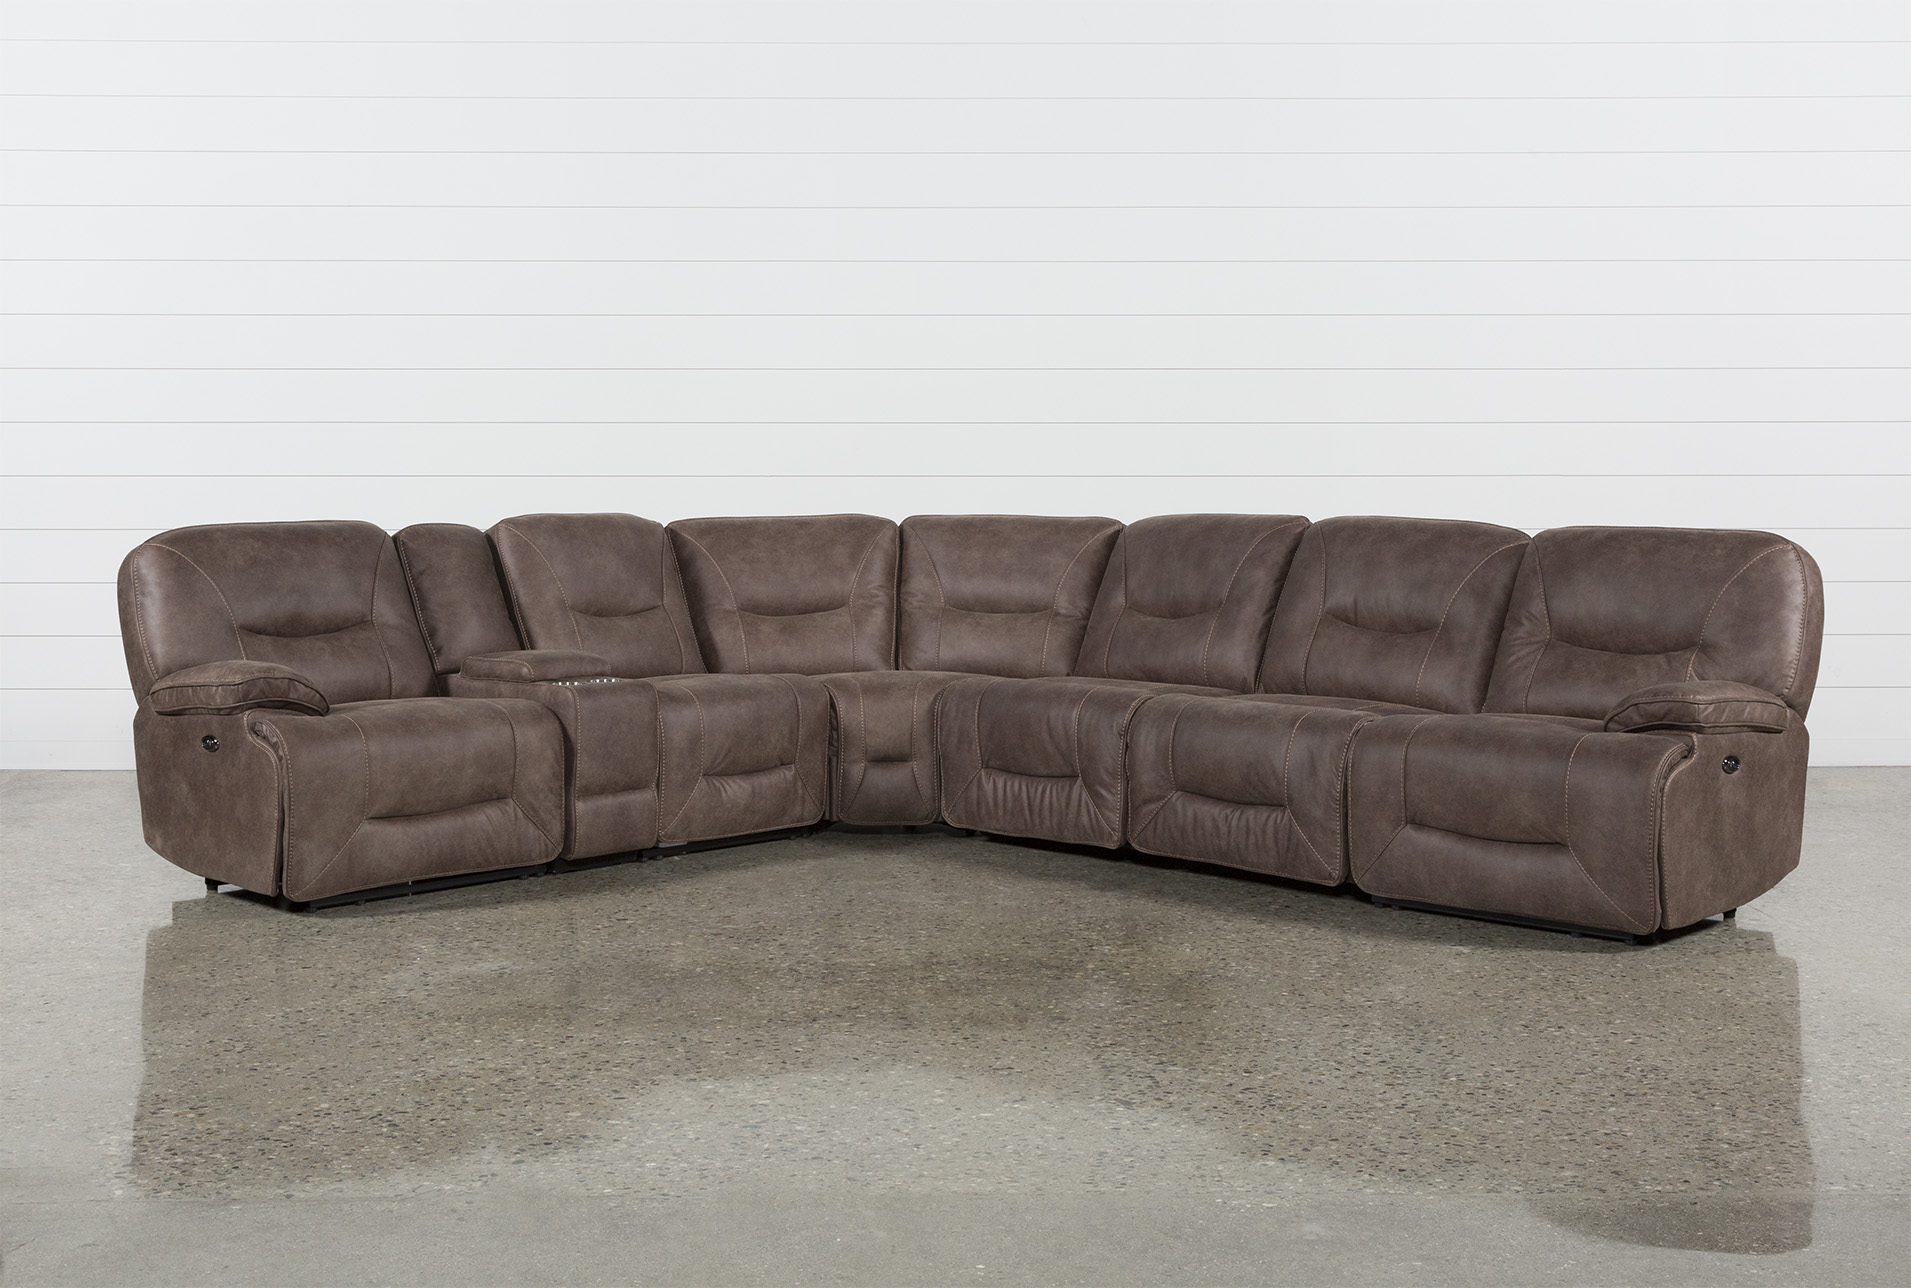 Jackson 6 Piece Power Reclining Sectional W/ Sleeper (Qty: 1) Has Been  Successfully Added To Your Cart.